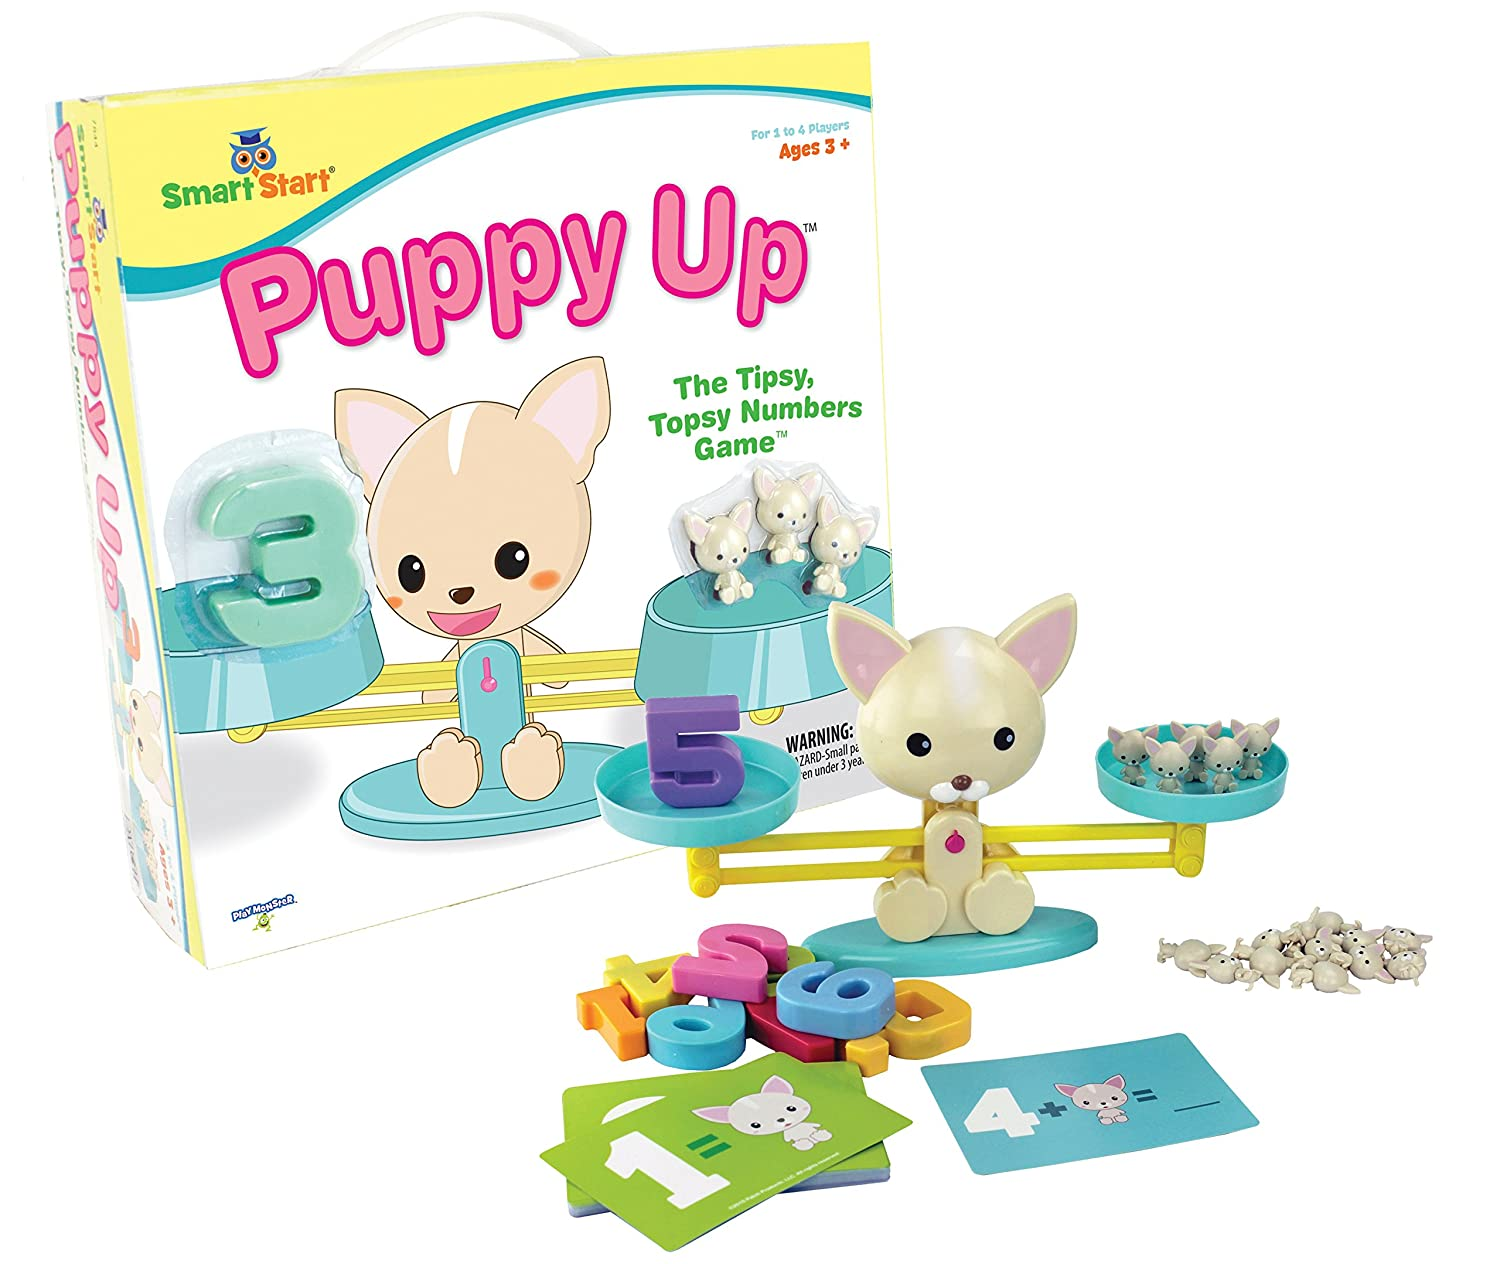 Smart Start Puppy Up Patch Products 7844